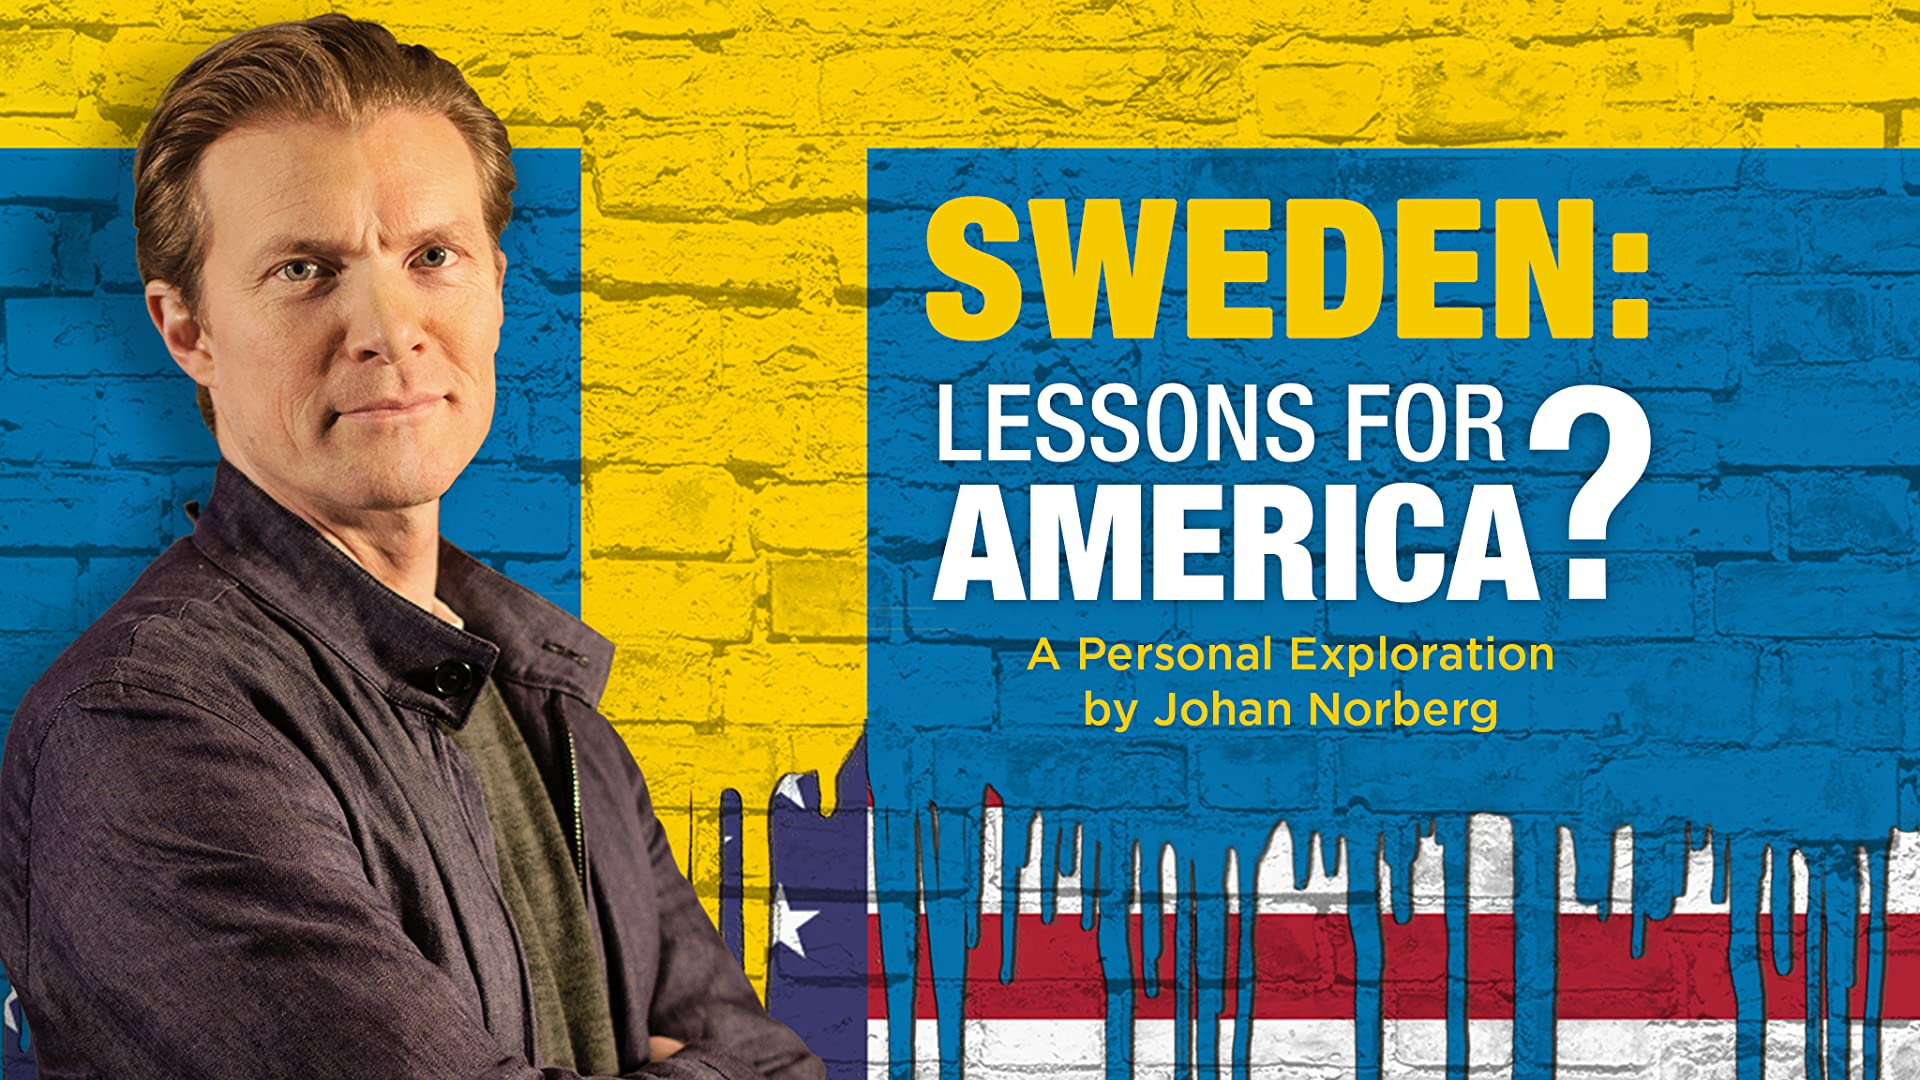 Sweden: Lessons for America?